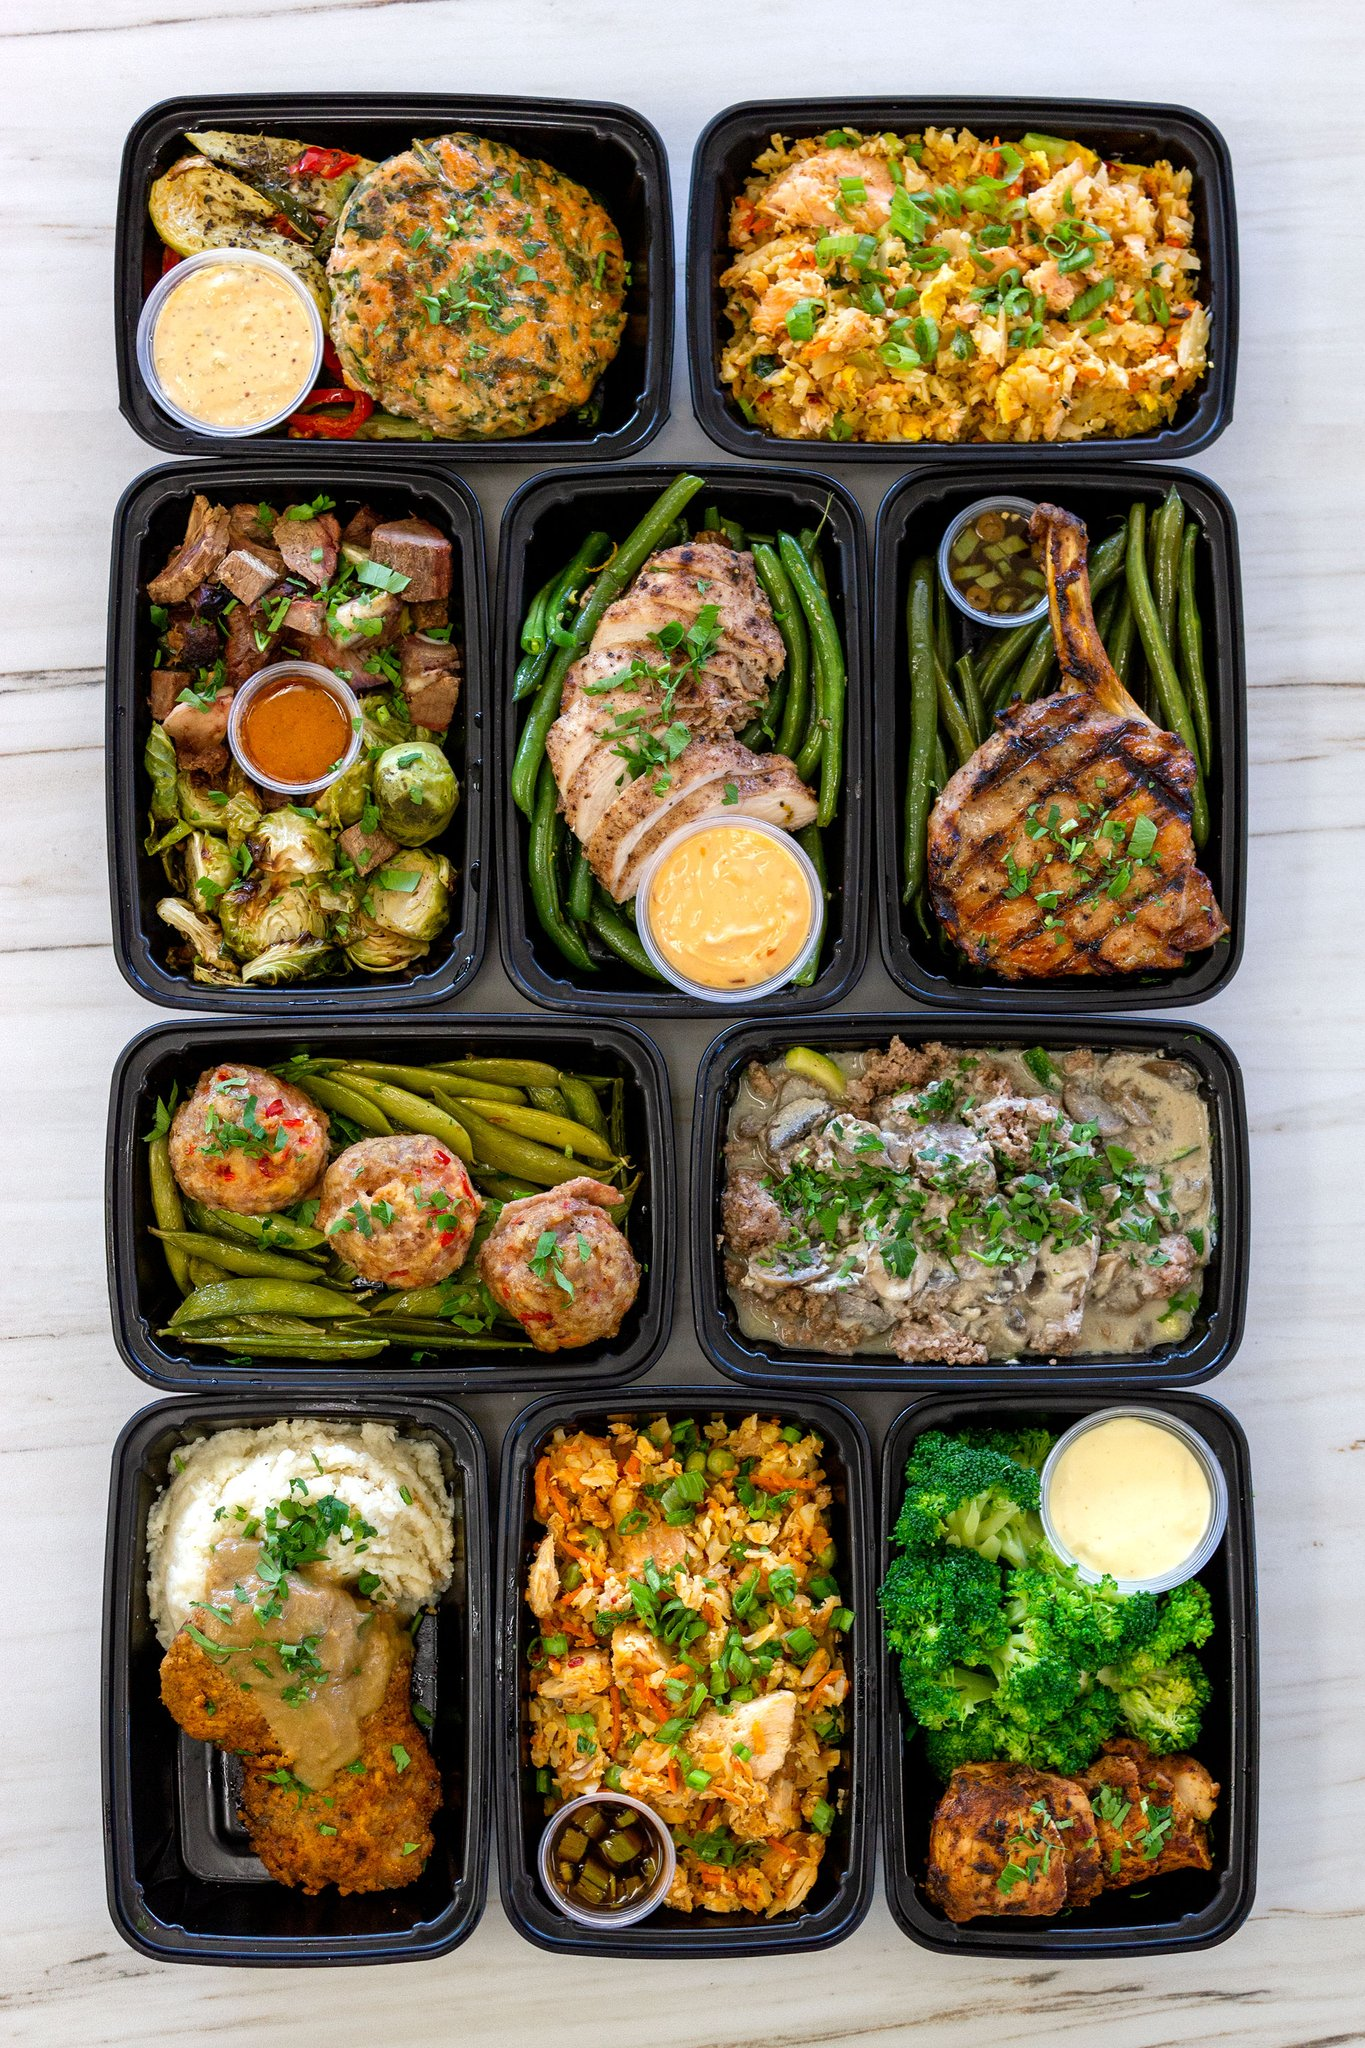 Best Meal Delivery Services, Eat To Evolve Meal Plan